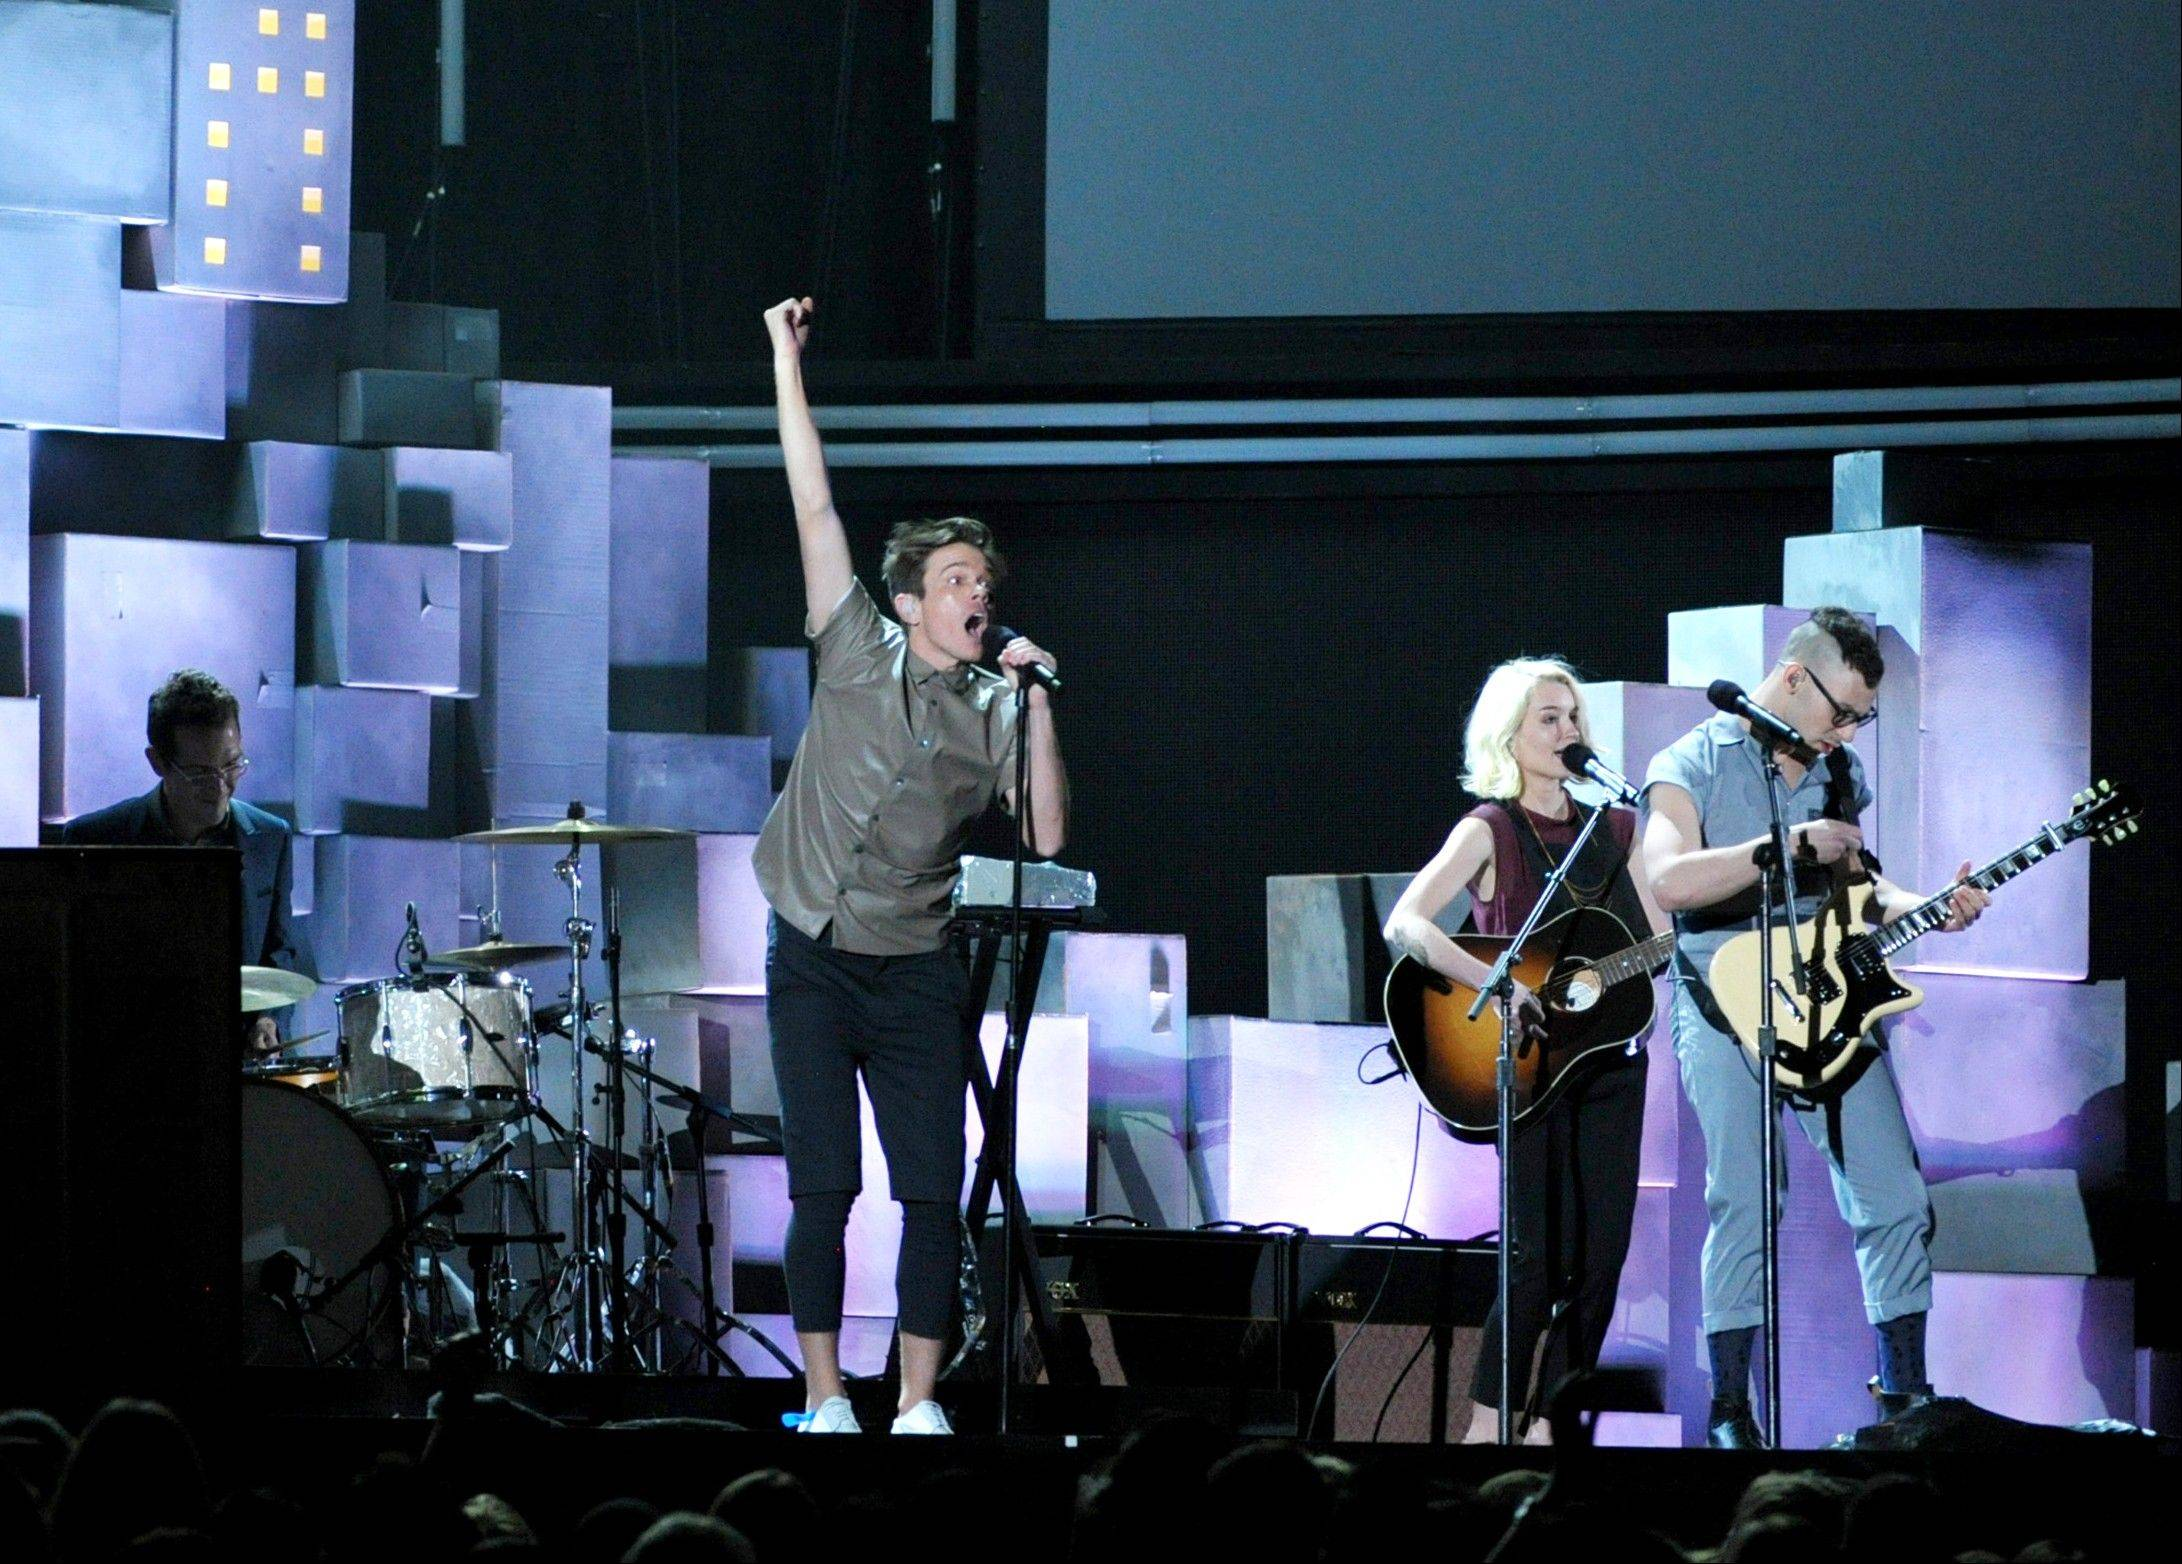 Musical group fun. performs at the 55th annual Grammy Awards on Sunday, Feb. 10, 2013, in Los Angeles. The band won best new artist and song of the year.